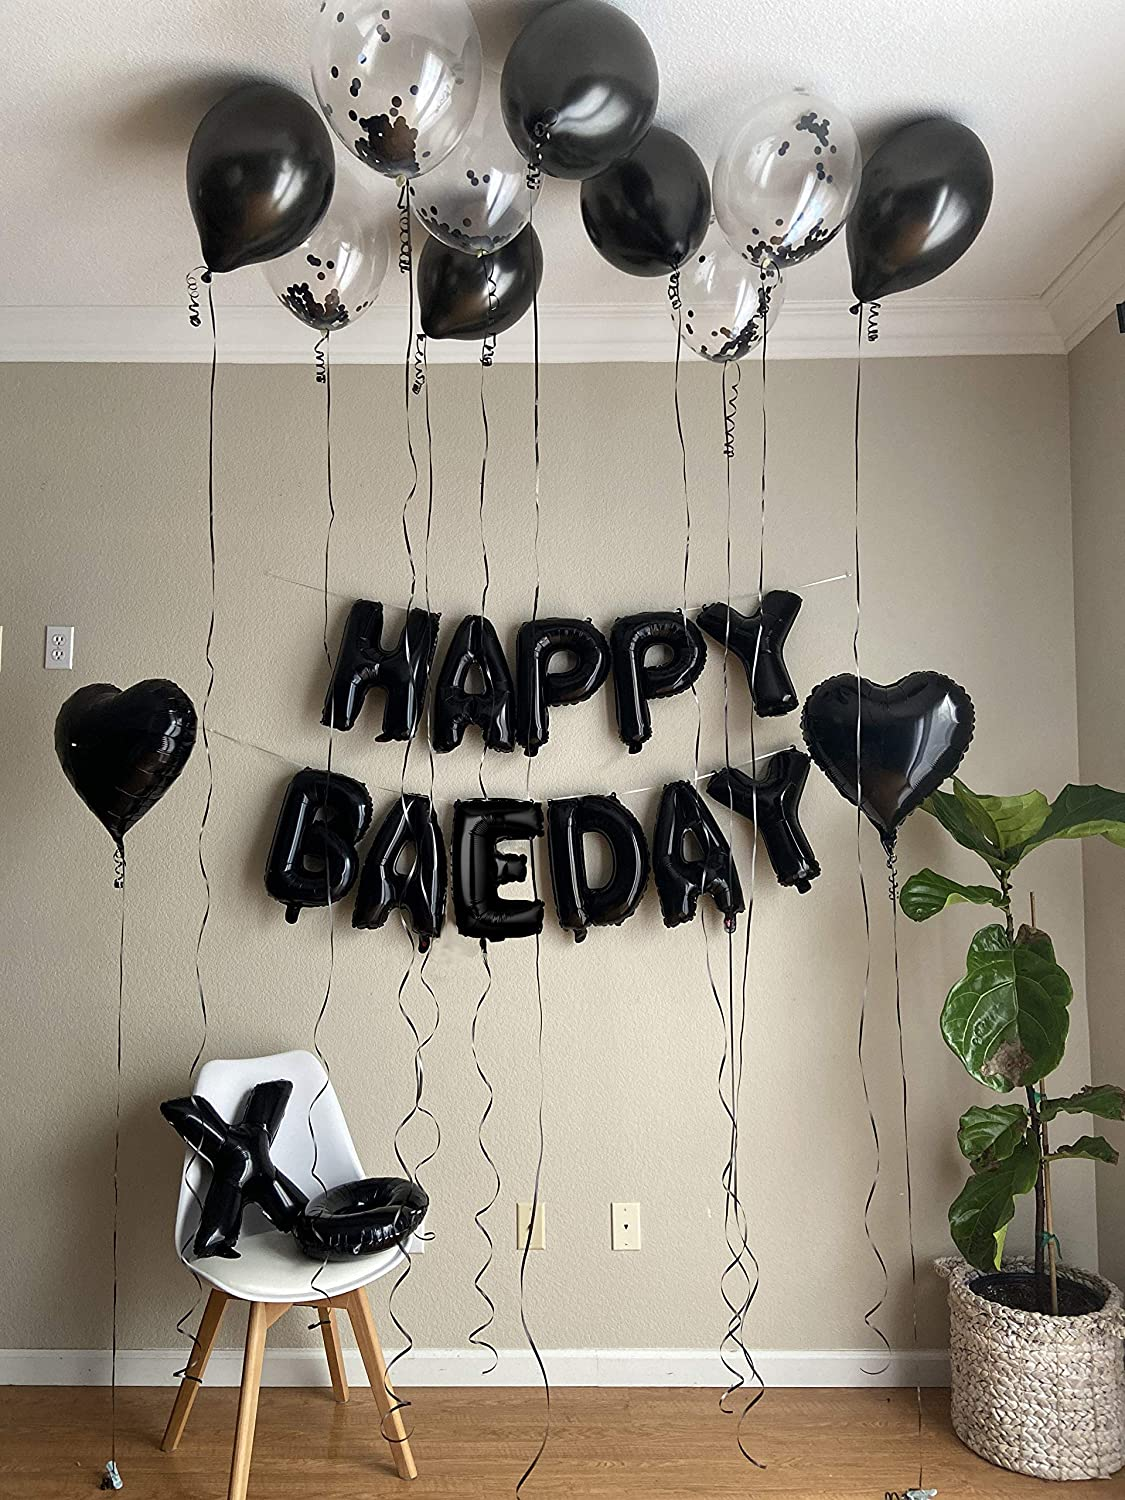 Happy Baeday Rose Gold And Black Balloons Set Valentines Day Balloons Party Set For Birthday Party Decorations For Selfie And Group Photos 40 Xo Letters Balloons Black 2 00 Amazon De Drogerie Korperpflege